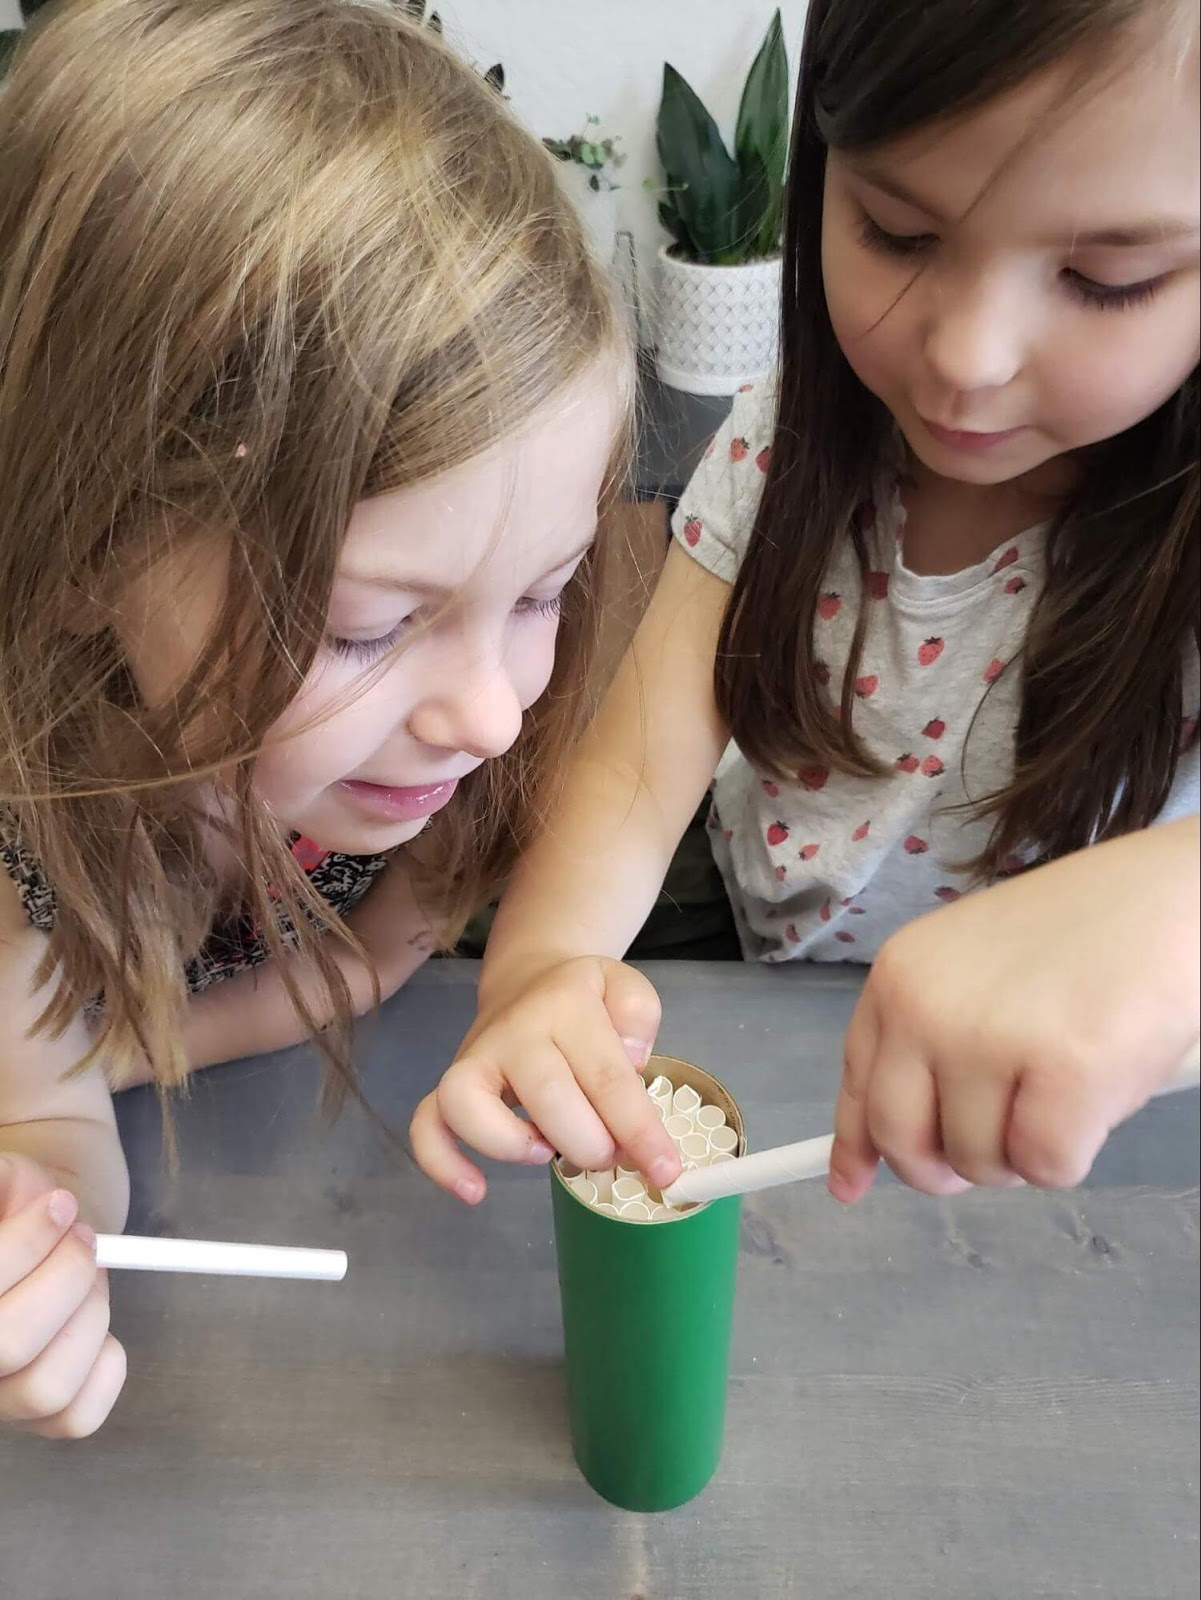 Girls stuffing straws into a green tube